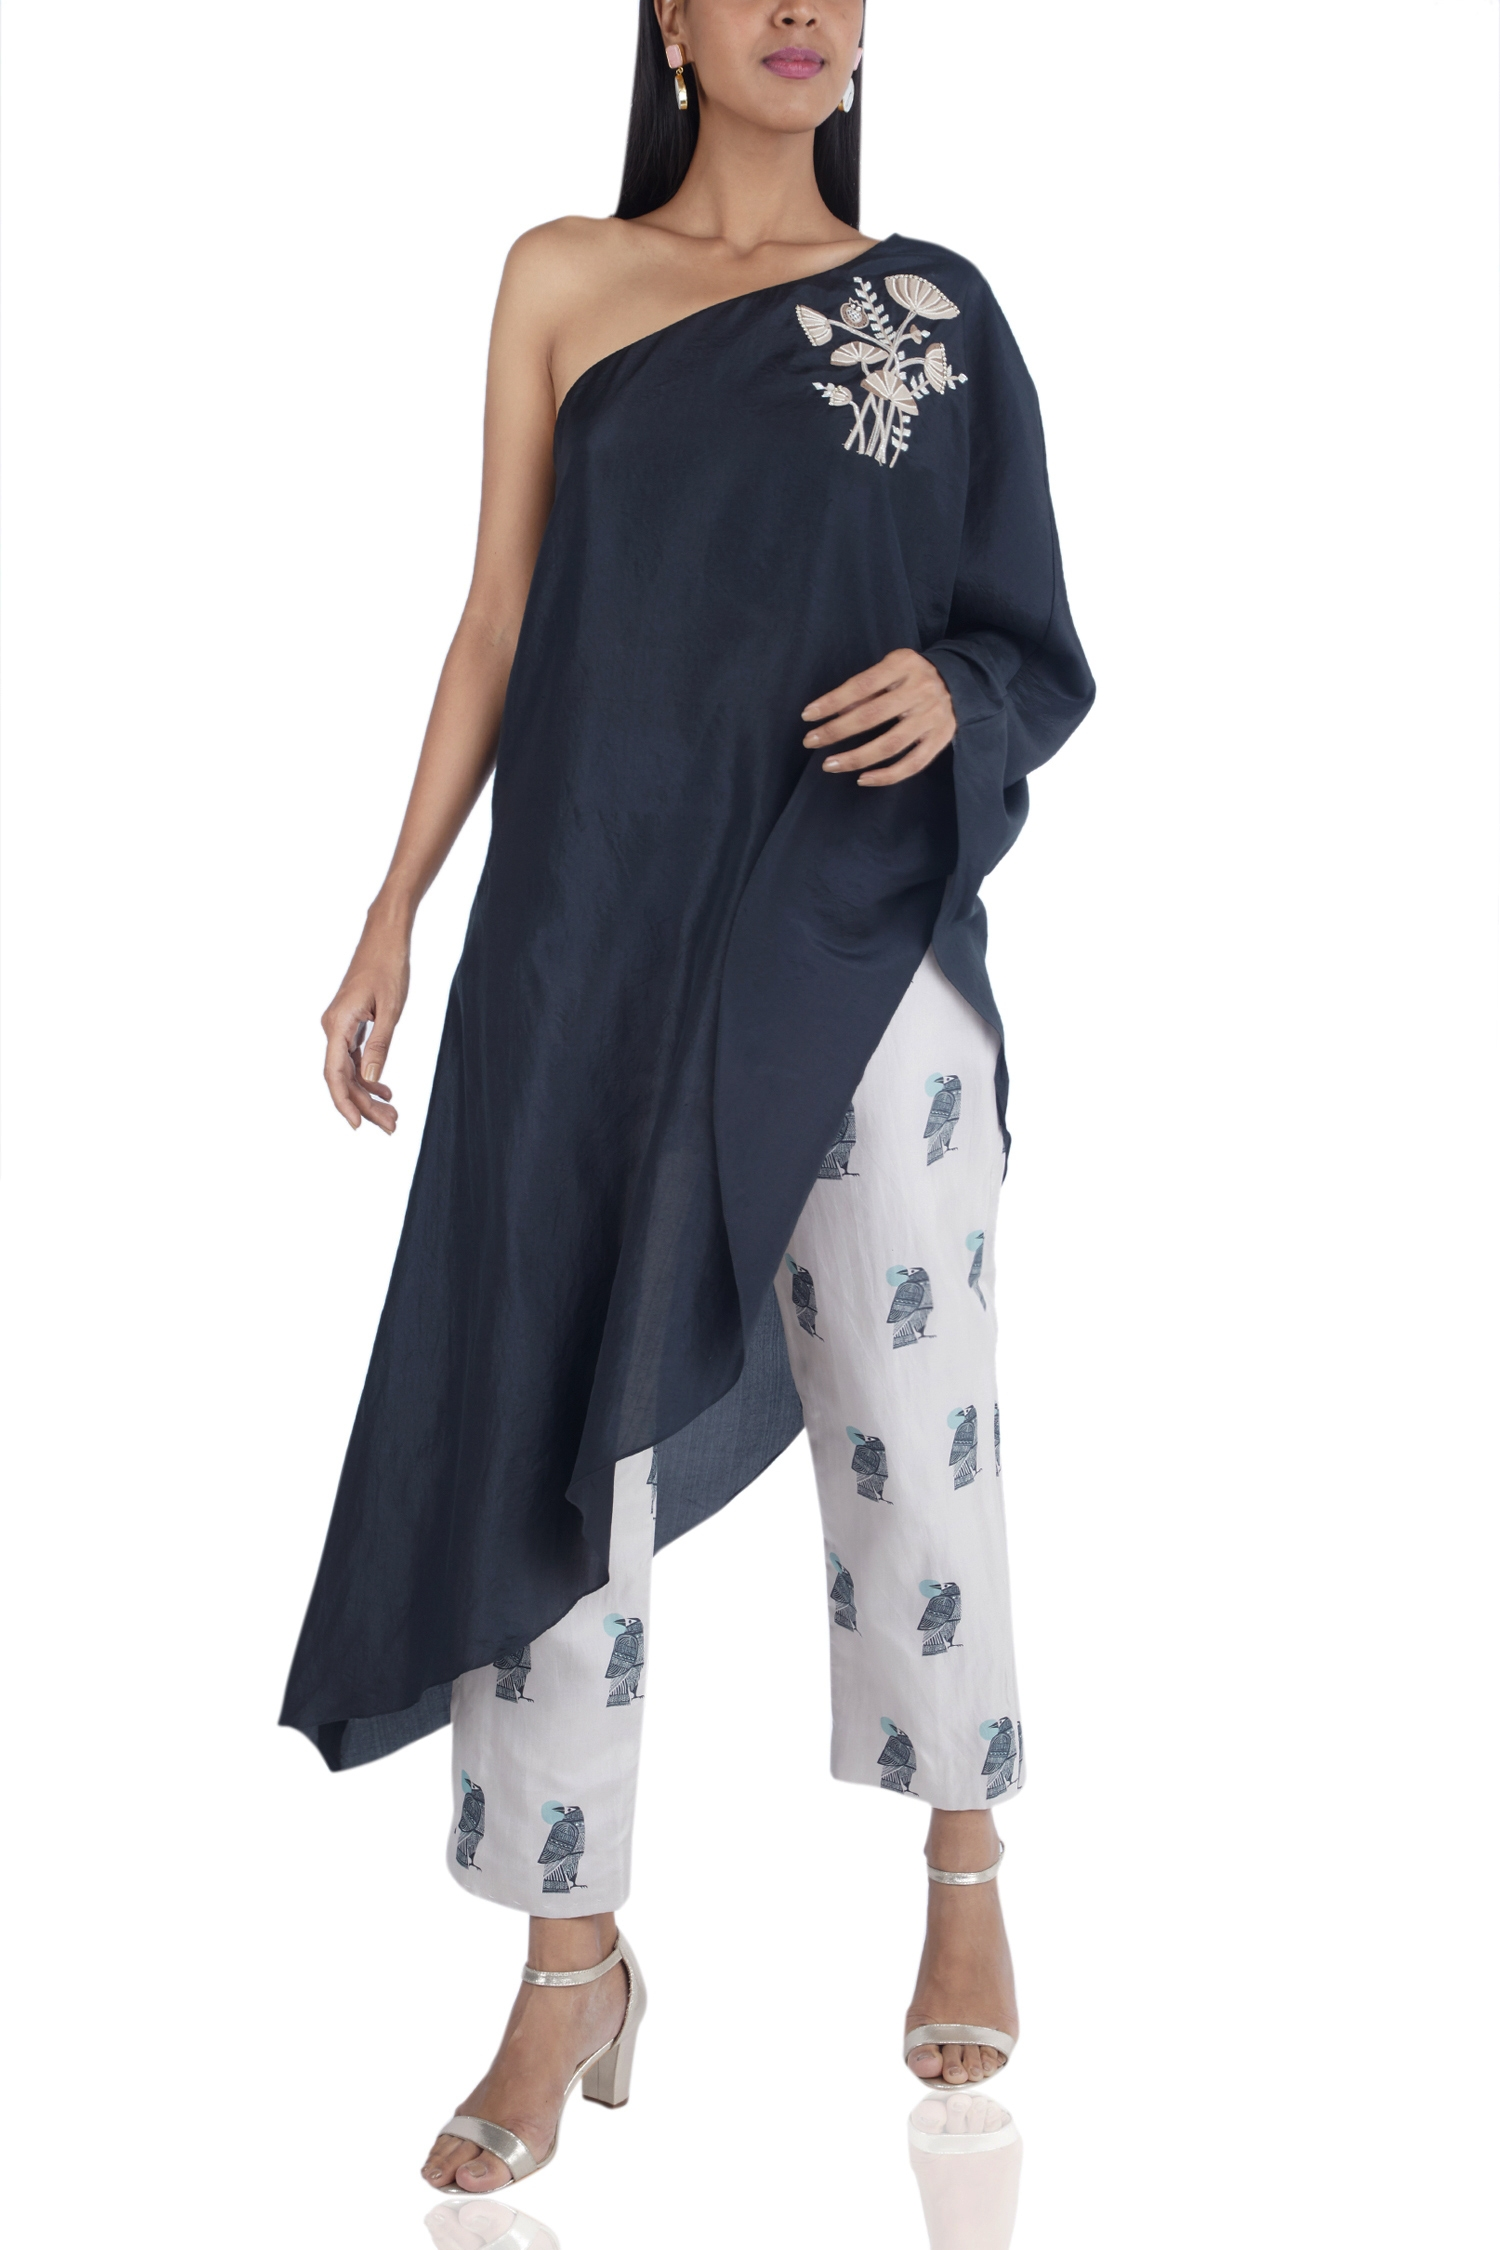 aac79dca1ea4 One-shoulder kurta with printed pants - New In